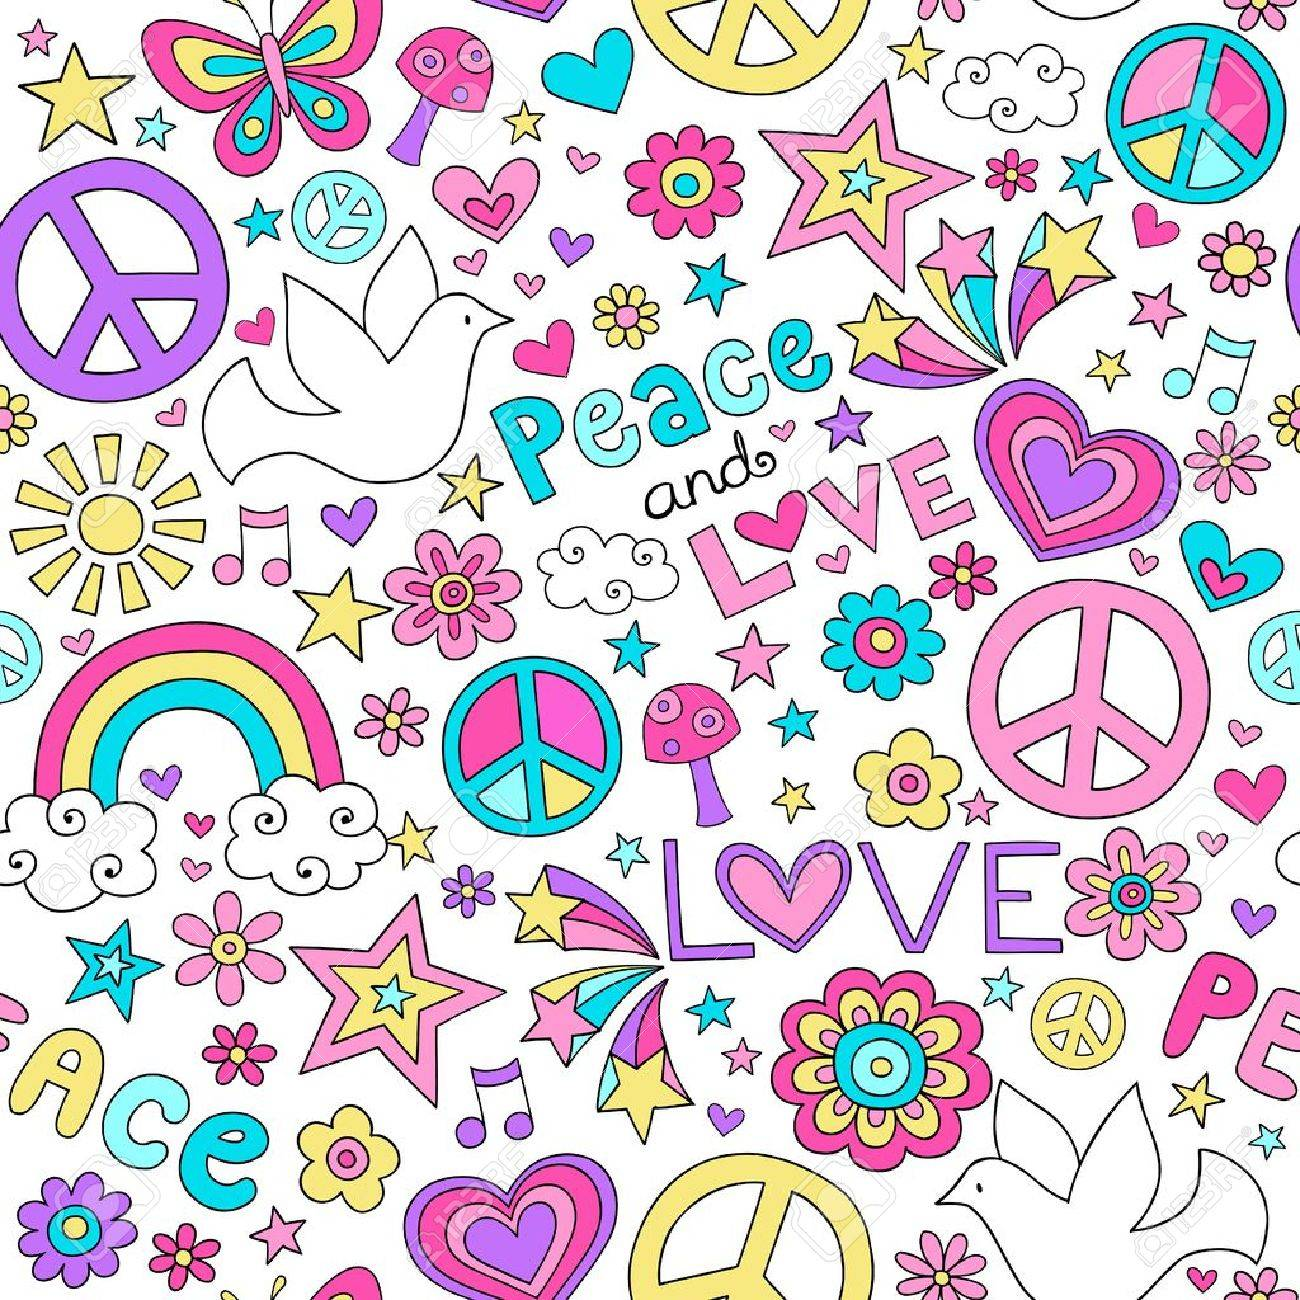 Seamless Pattern Doves Groovy Peace Notebook Doodle Design- Hand-Drawn Vector Illustration Background Stock Vector - 17165005